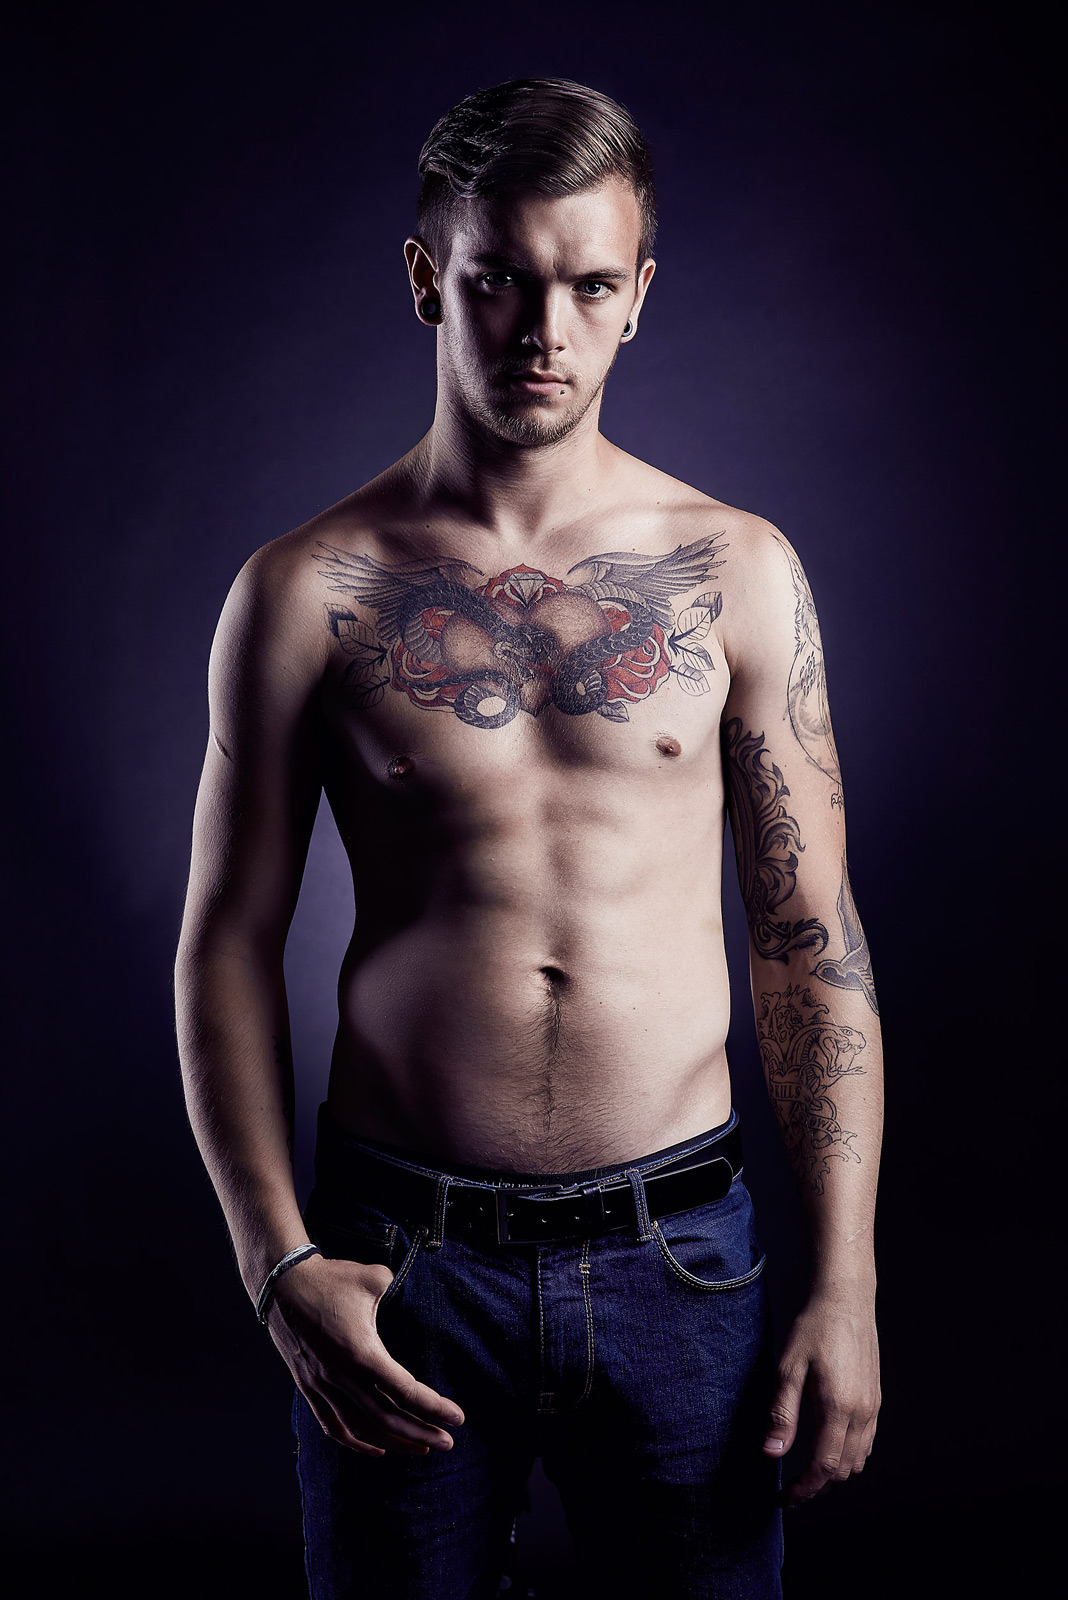 Man with shirt off showing tattoos and looking at the camera